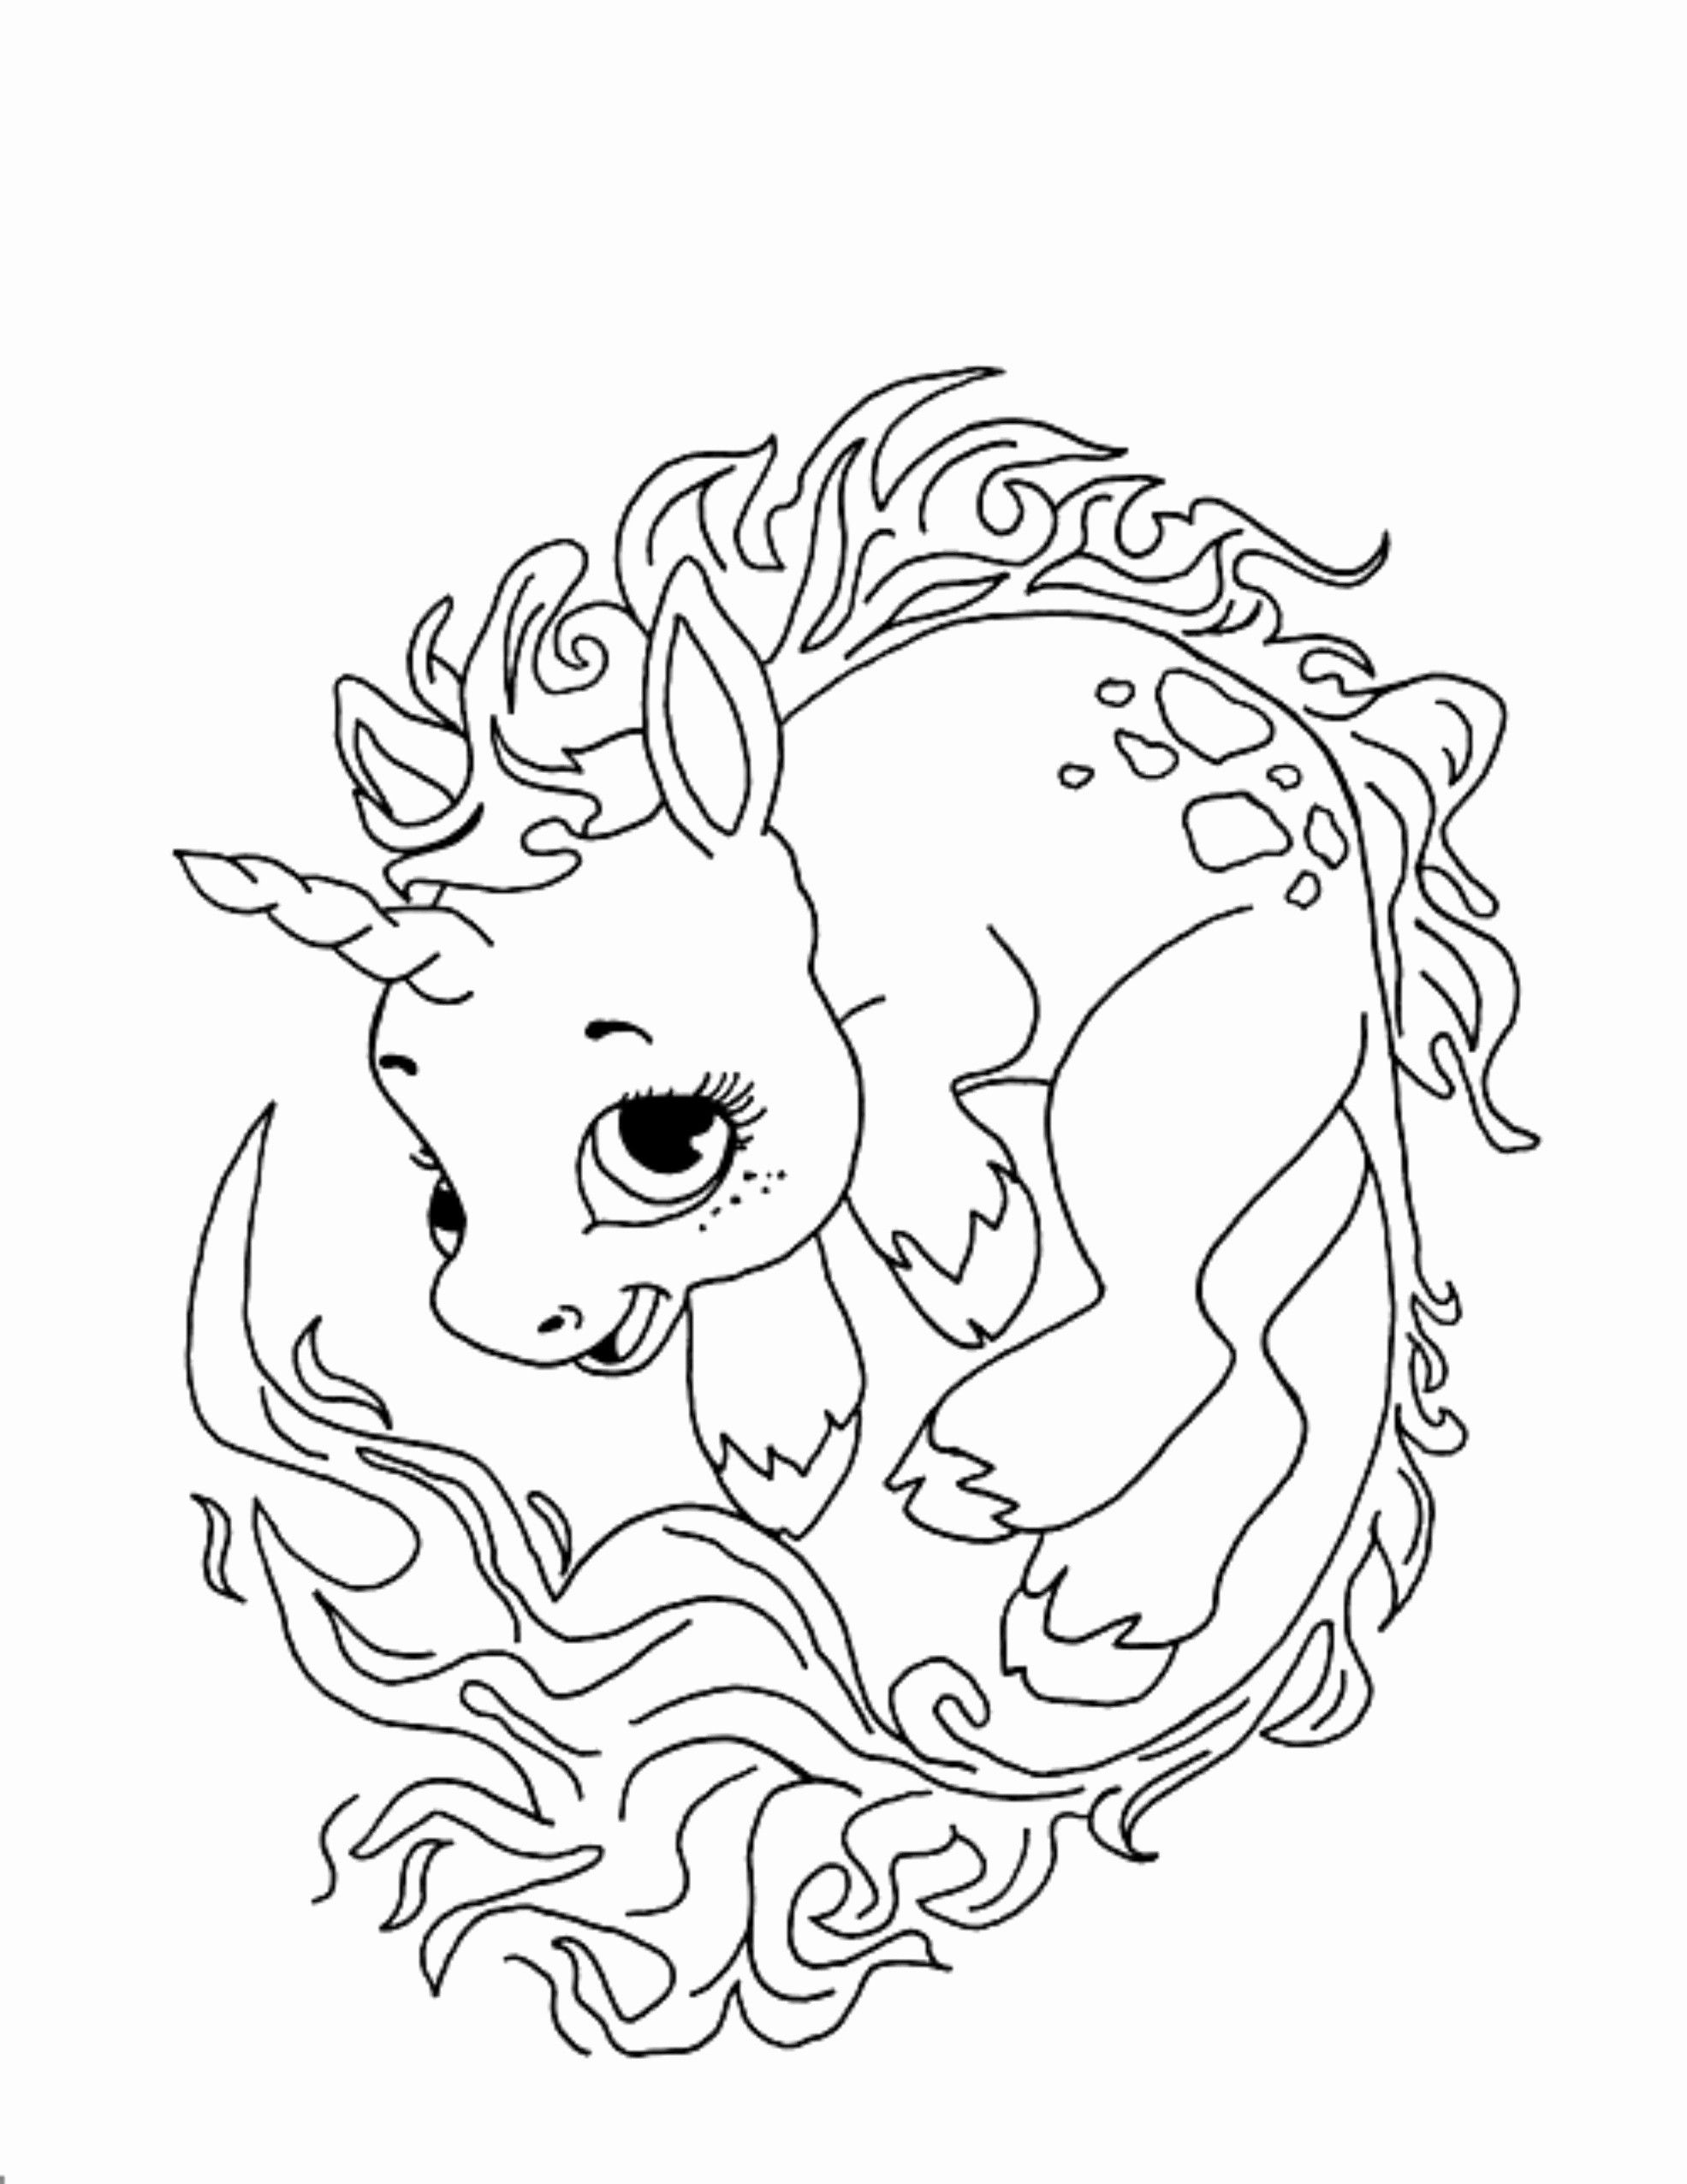 Baby Unicorn Coloring Page in 2020 | Space coloring pages ...